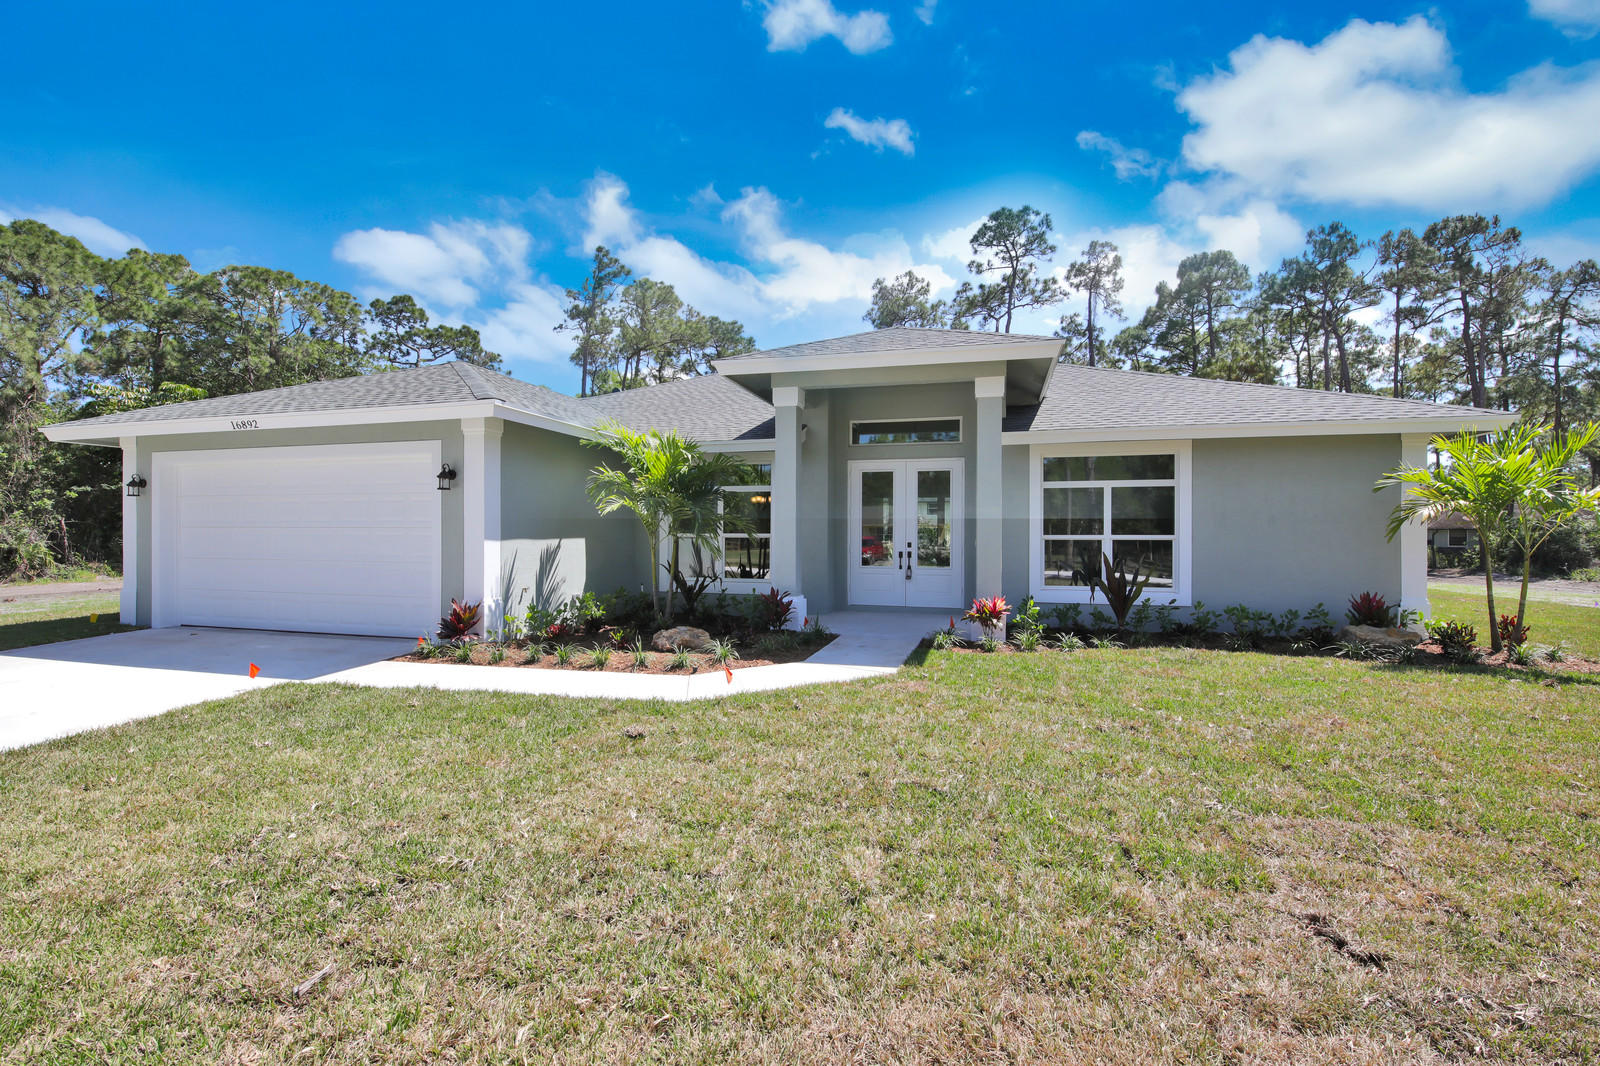 Photo of 16892 81st Lane N, Loxahatchee, FL 33470